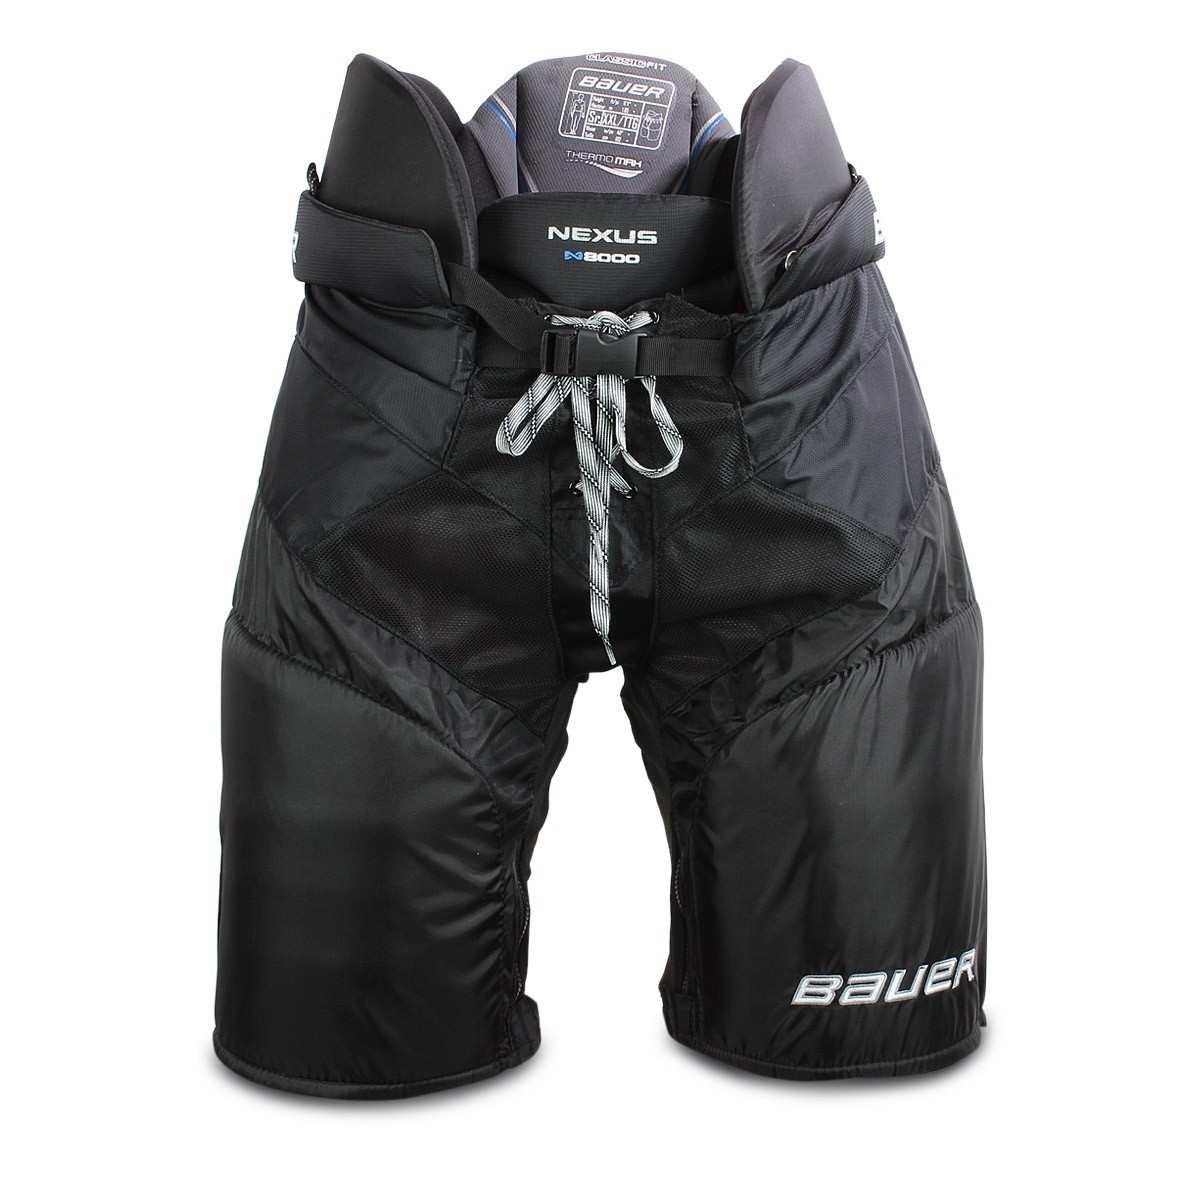 BAUER Nexus N8000 Junior Ice Hockey Pants